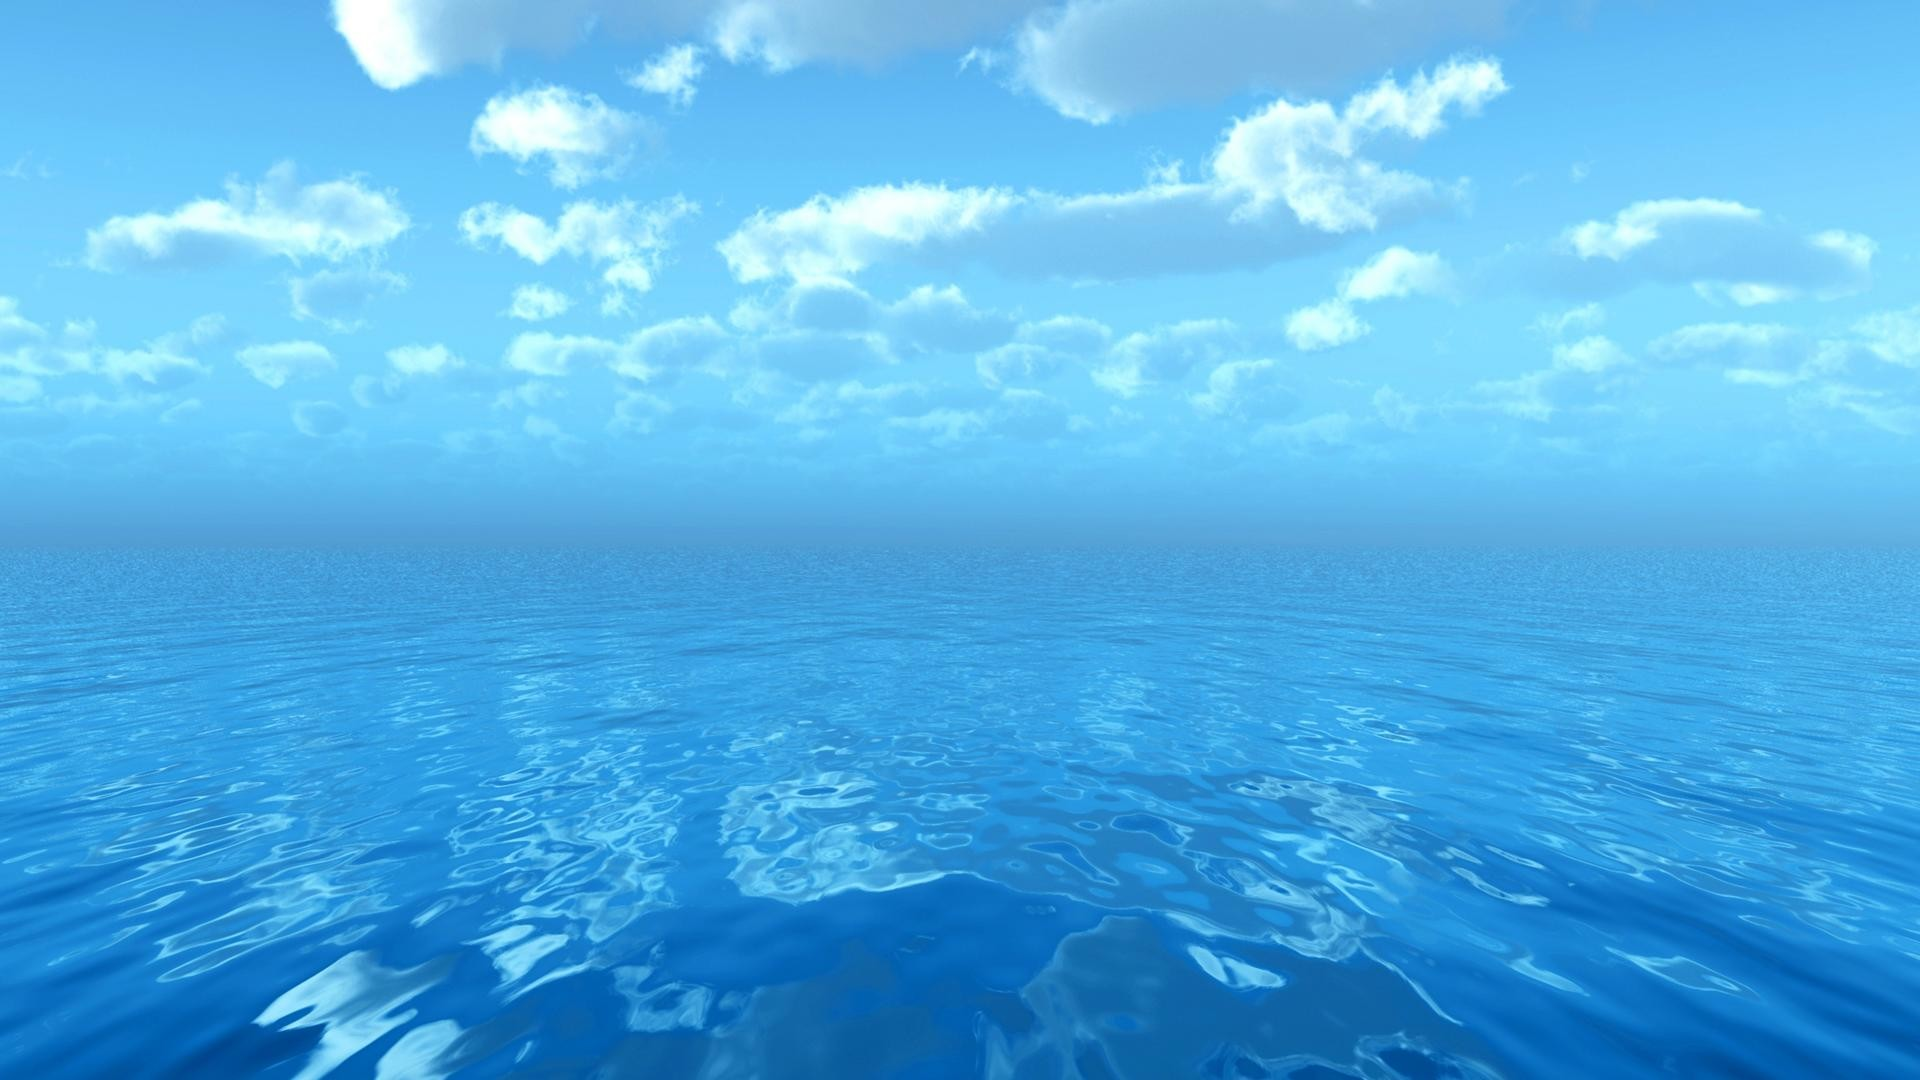 1920x1080 ocean, water, clouds, wow, nature